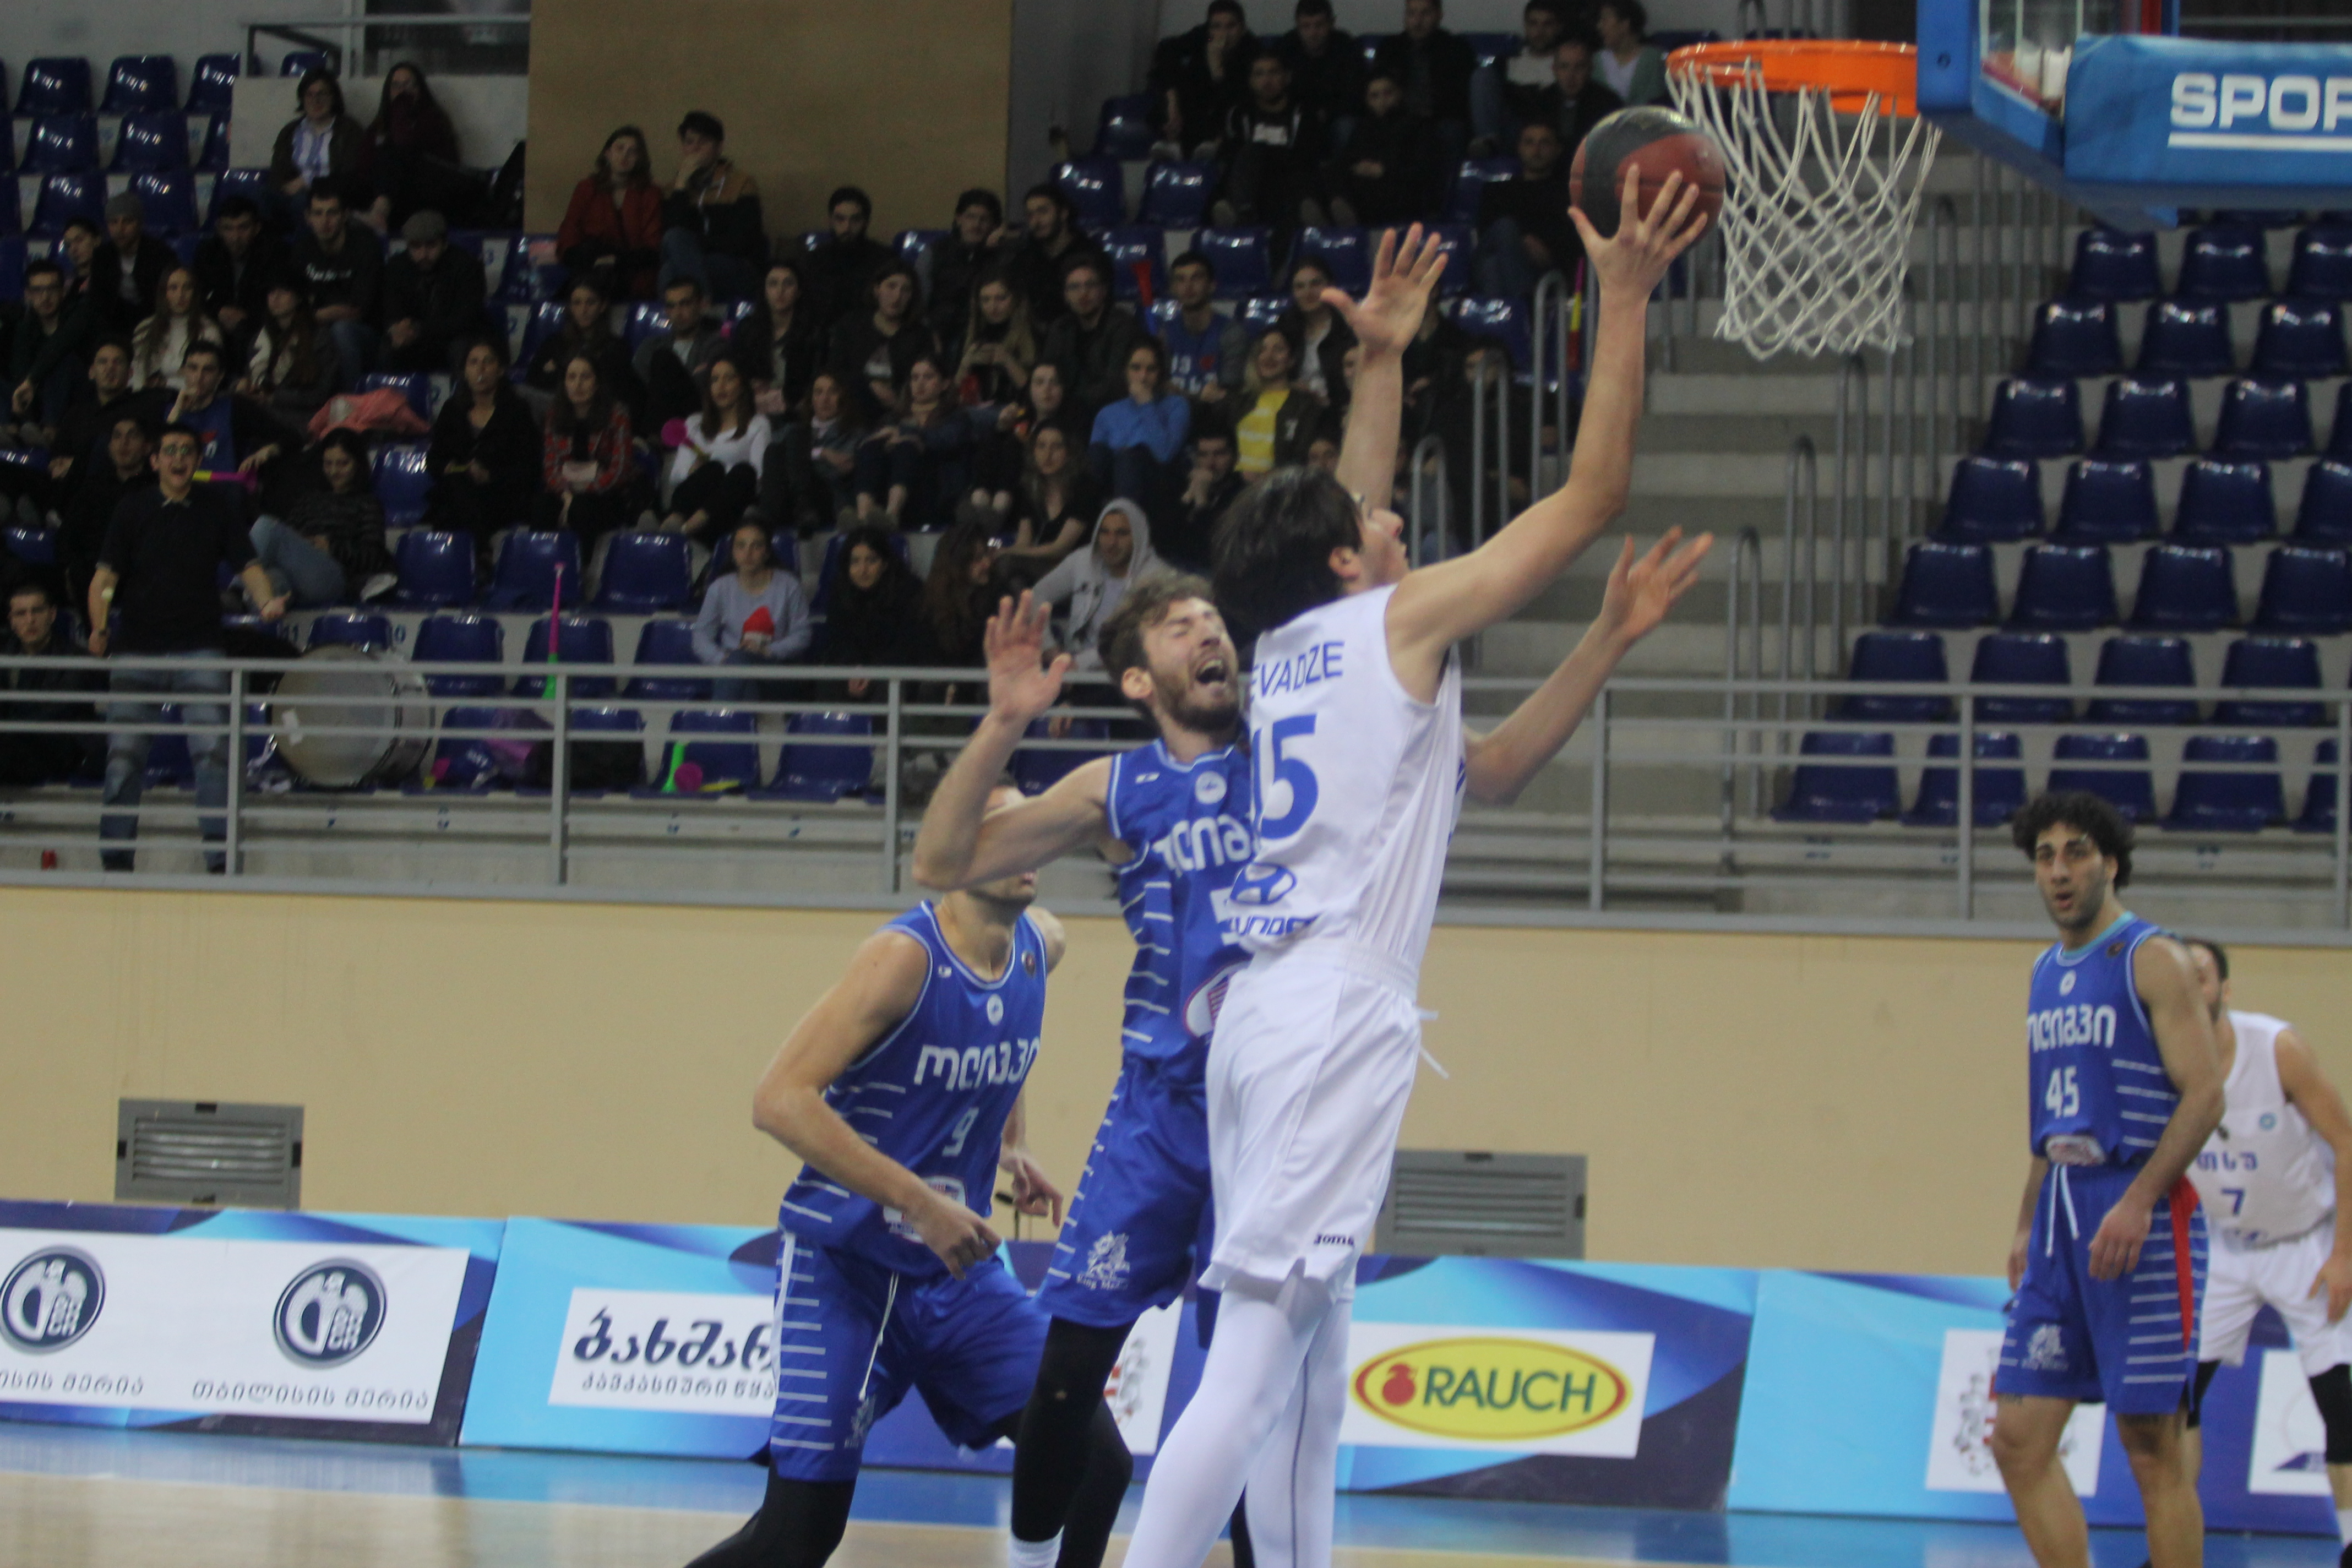 Olimpi defeated TSU-Hyundai in two overtimes